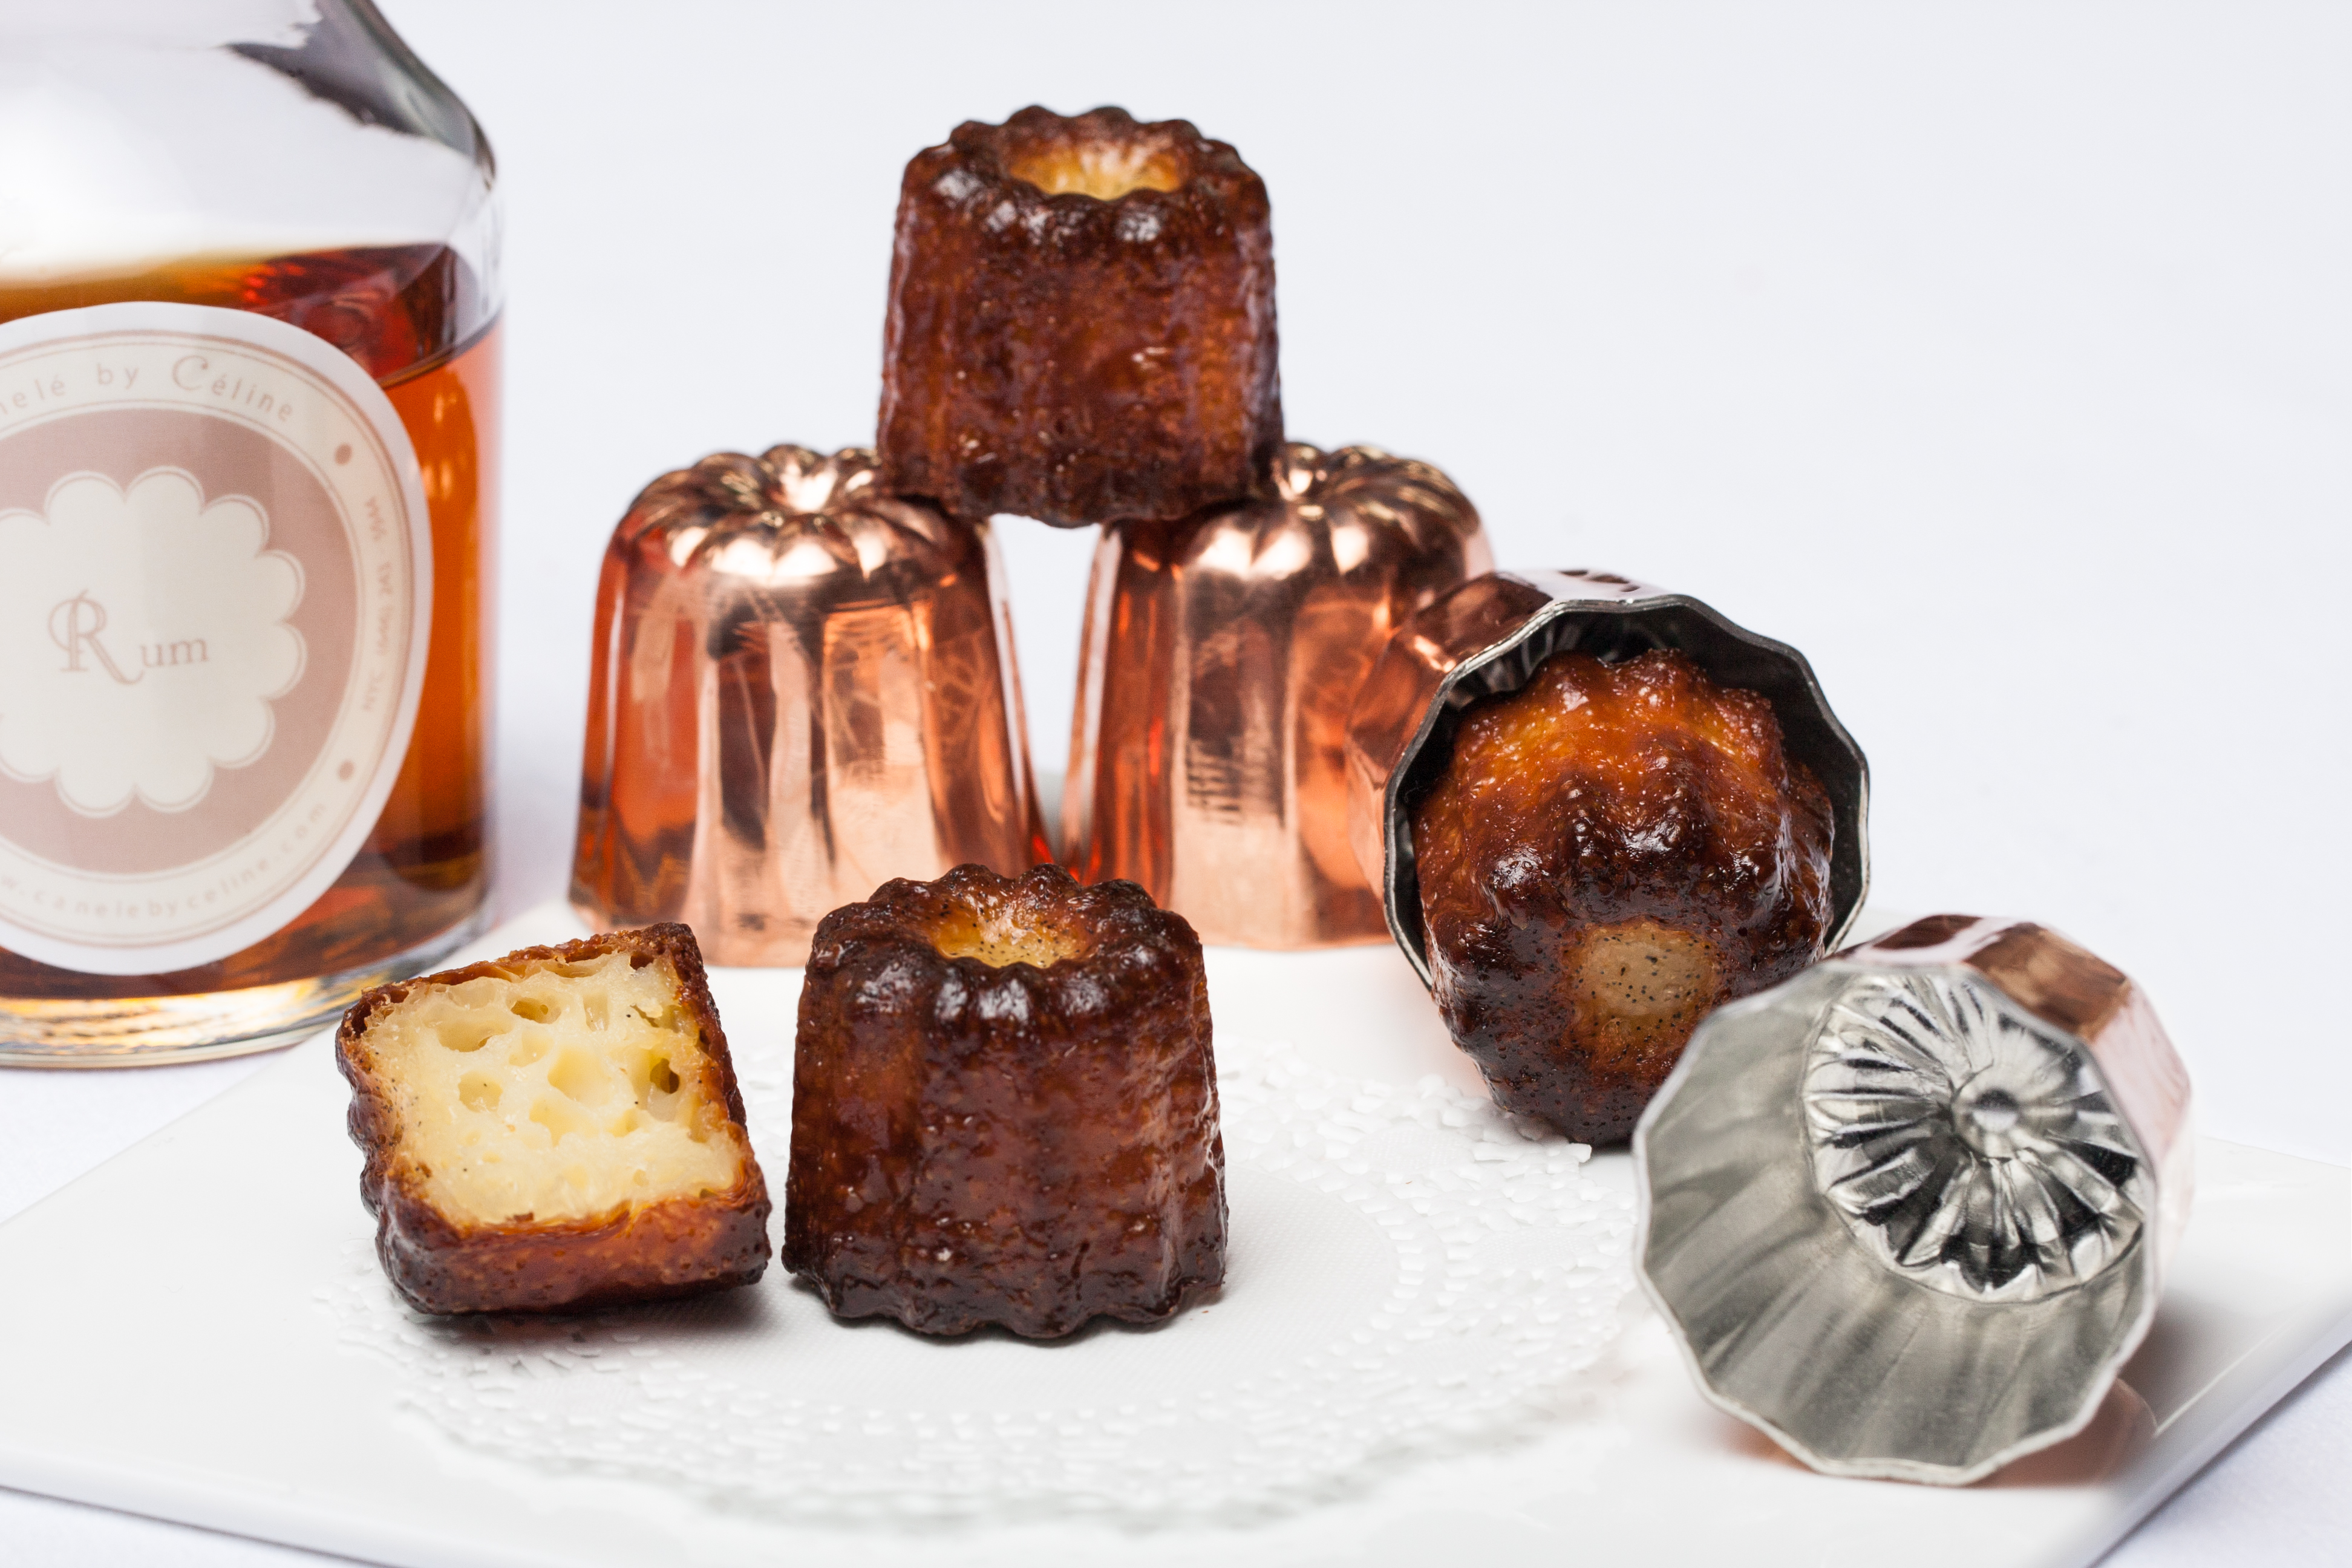 The Finest French Pastries at Canelé by Céline